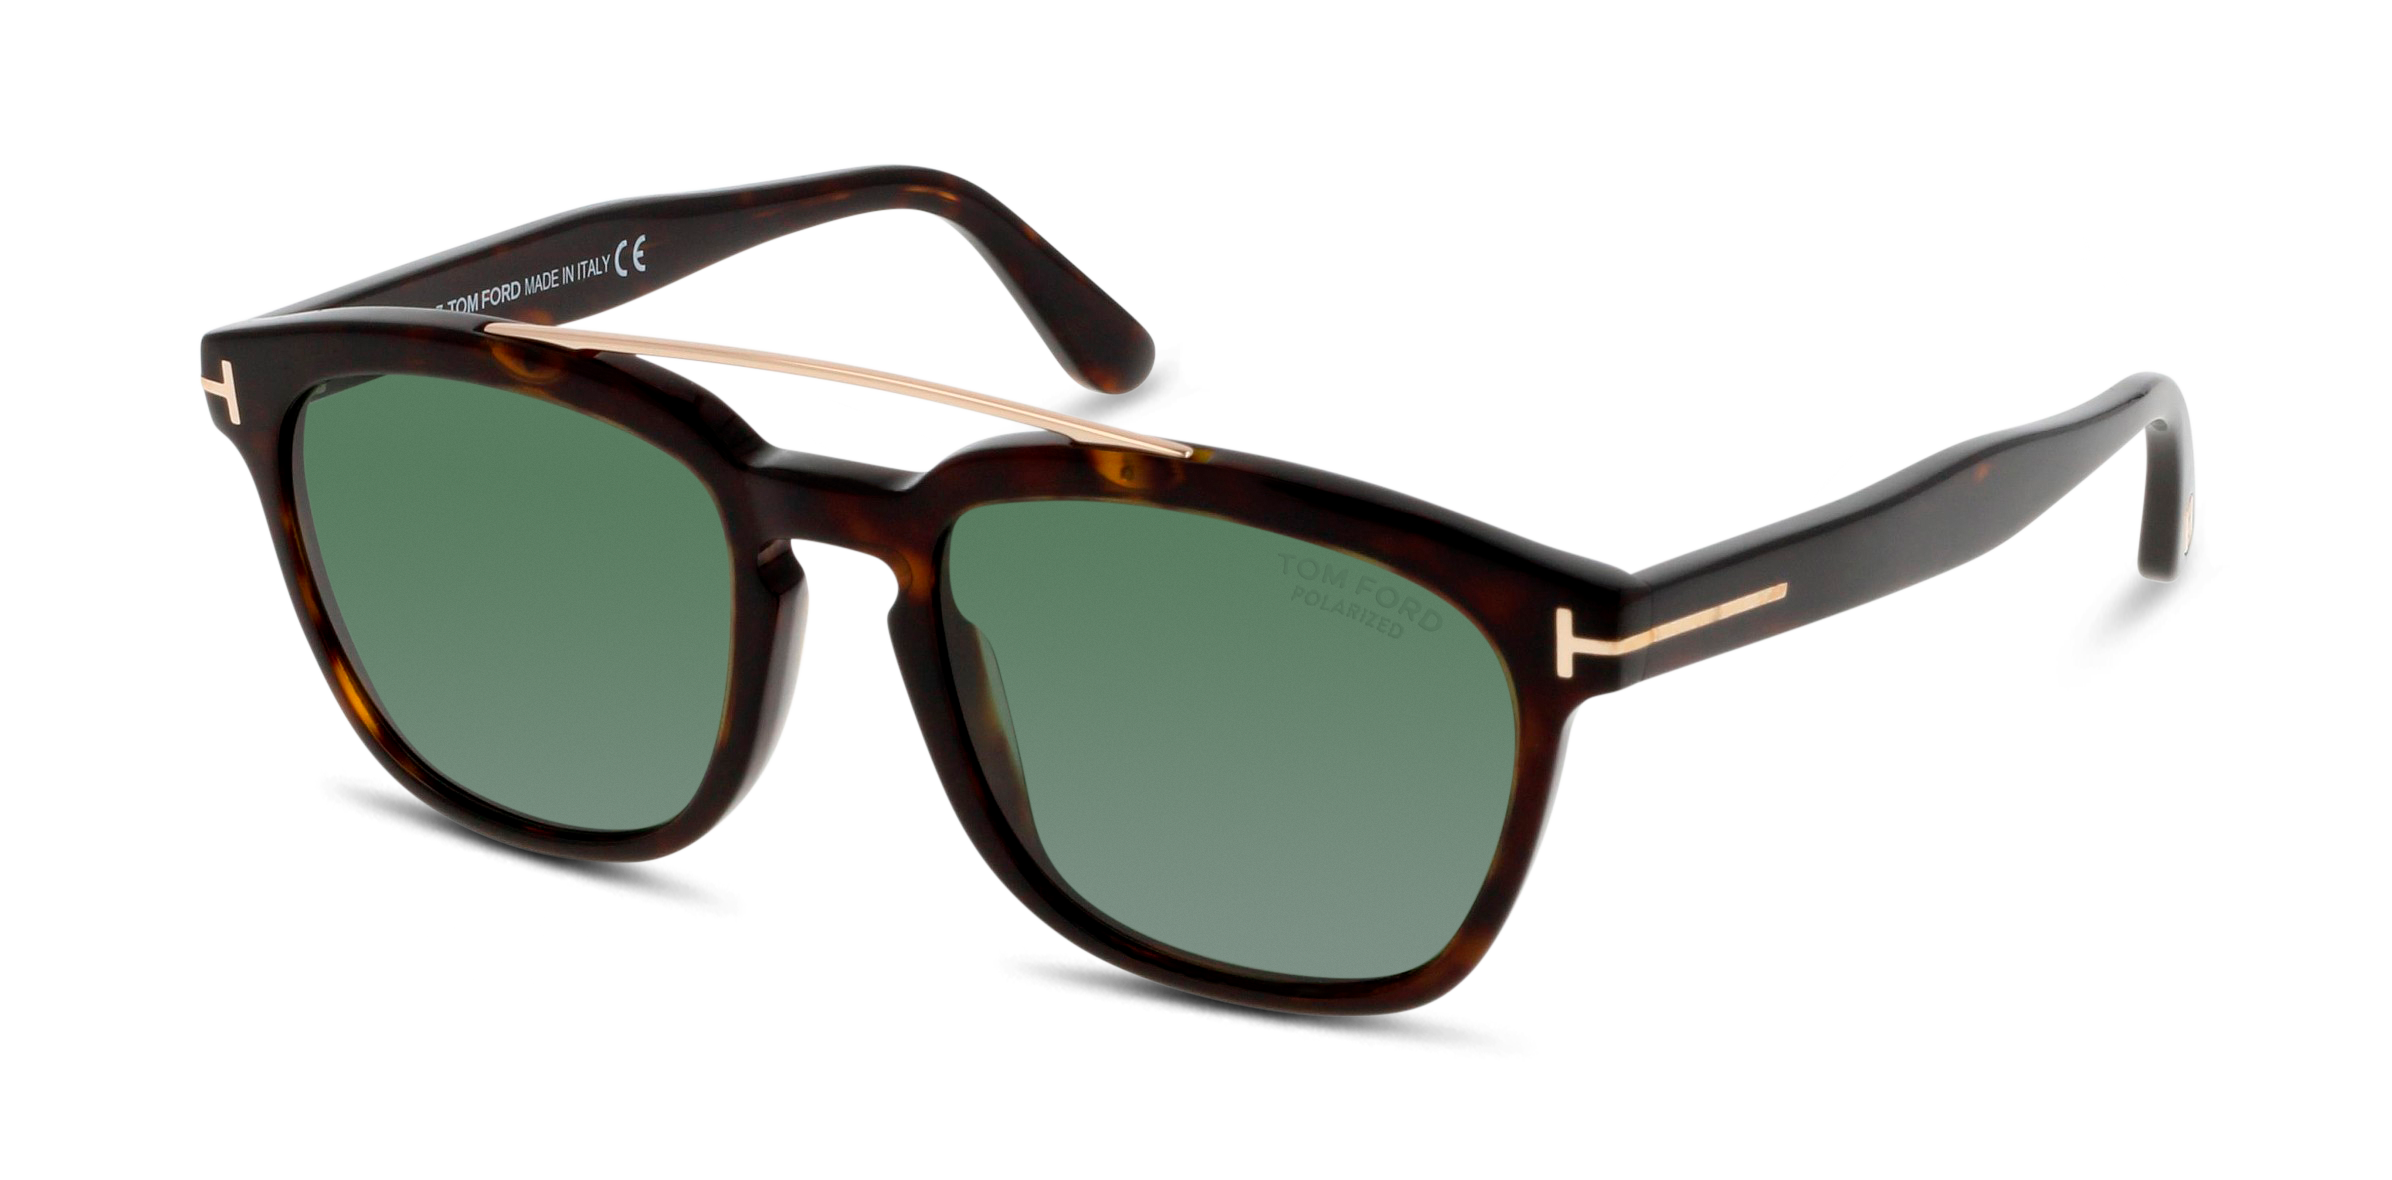 Angle_Left01 Tom Ford TF0516/52R/5419/145 Brun